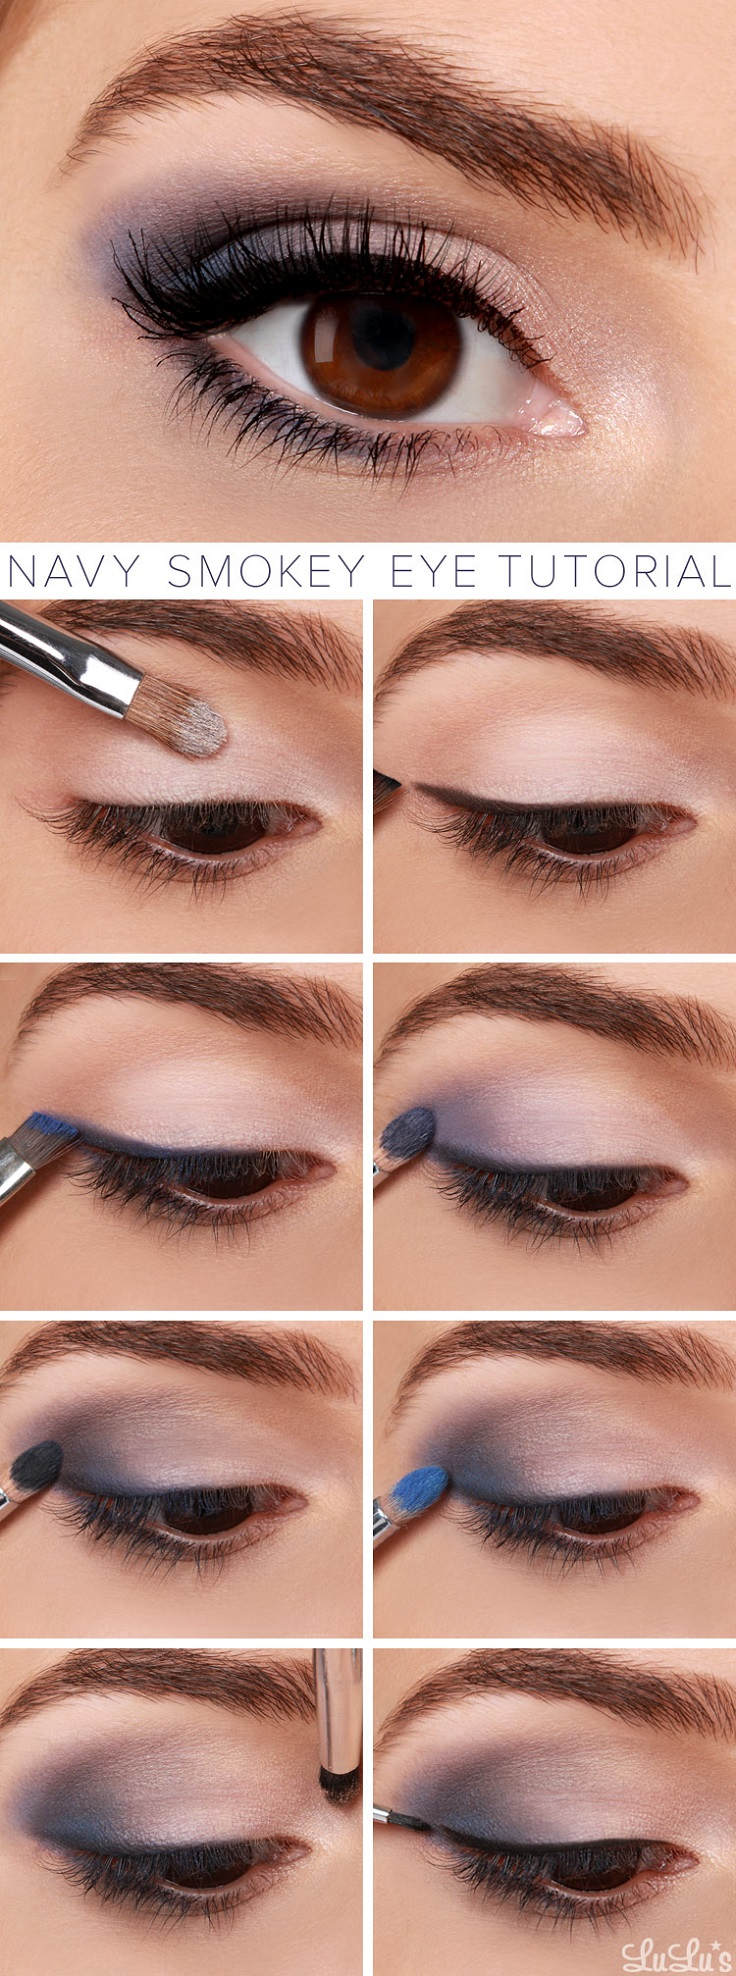 navy-smoky-eye-tutorial